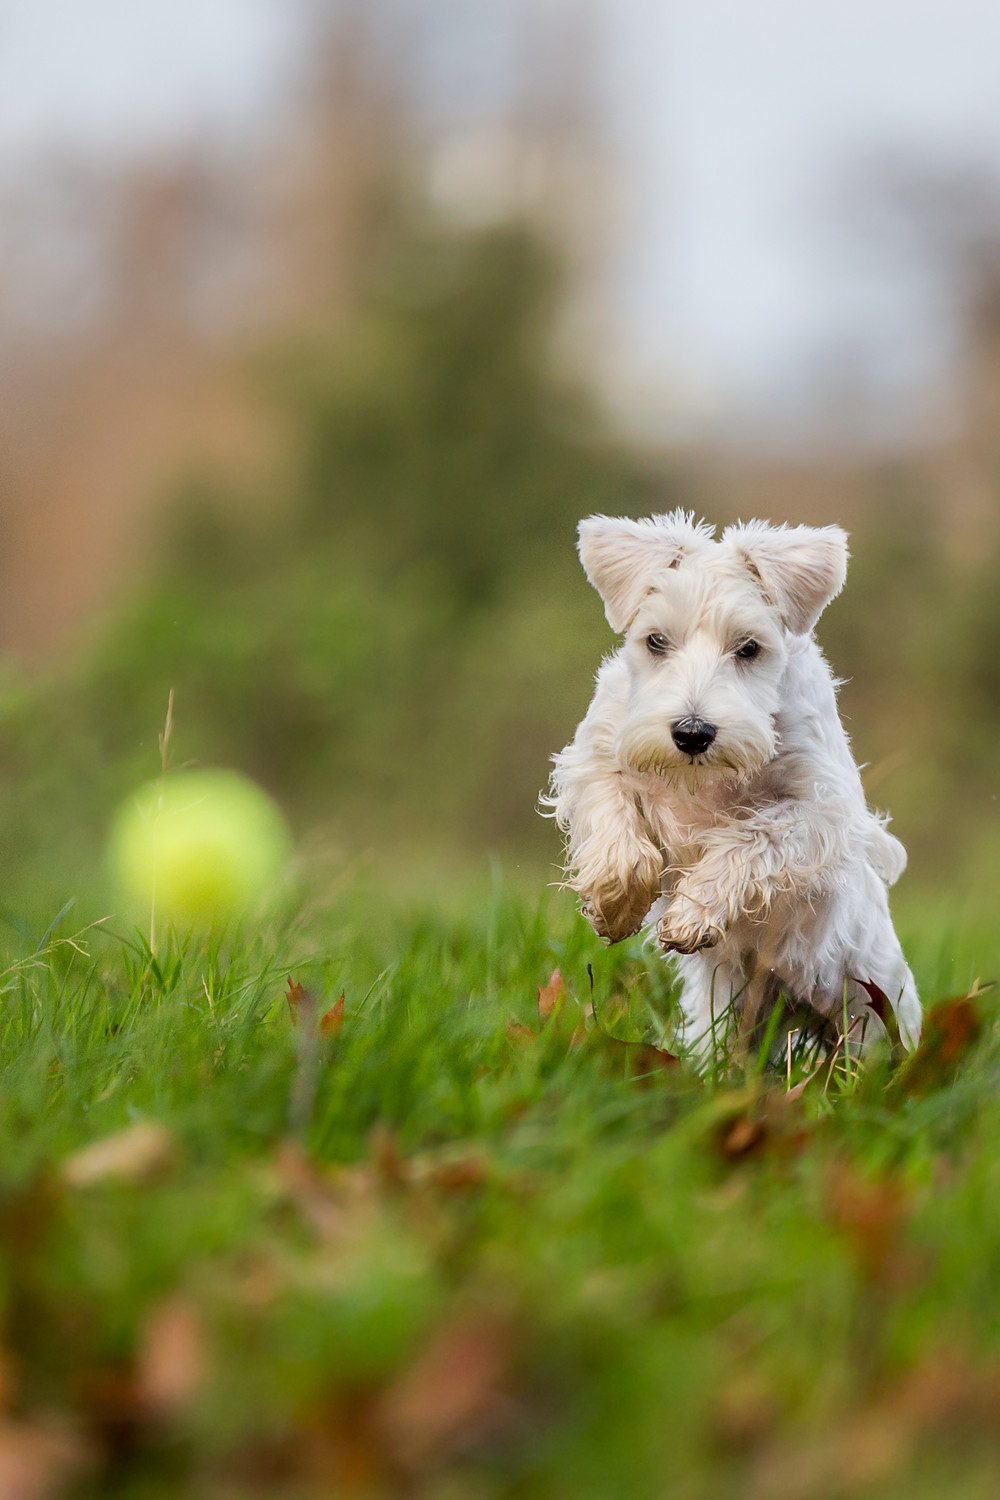 Dog photography in London. Charley the Miniature Schnauzer chasing a ball